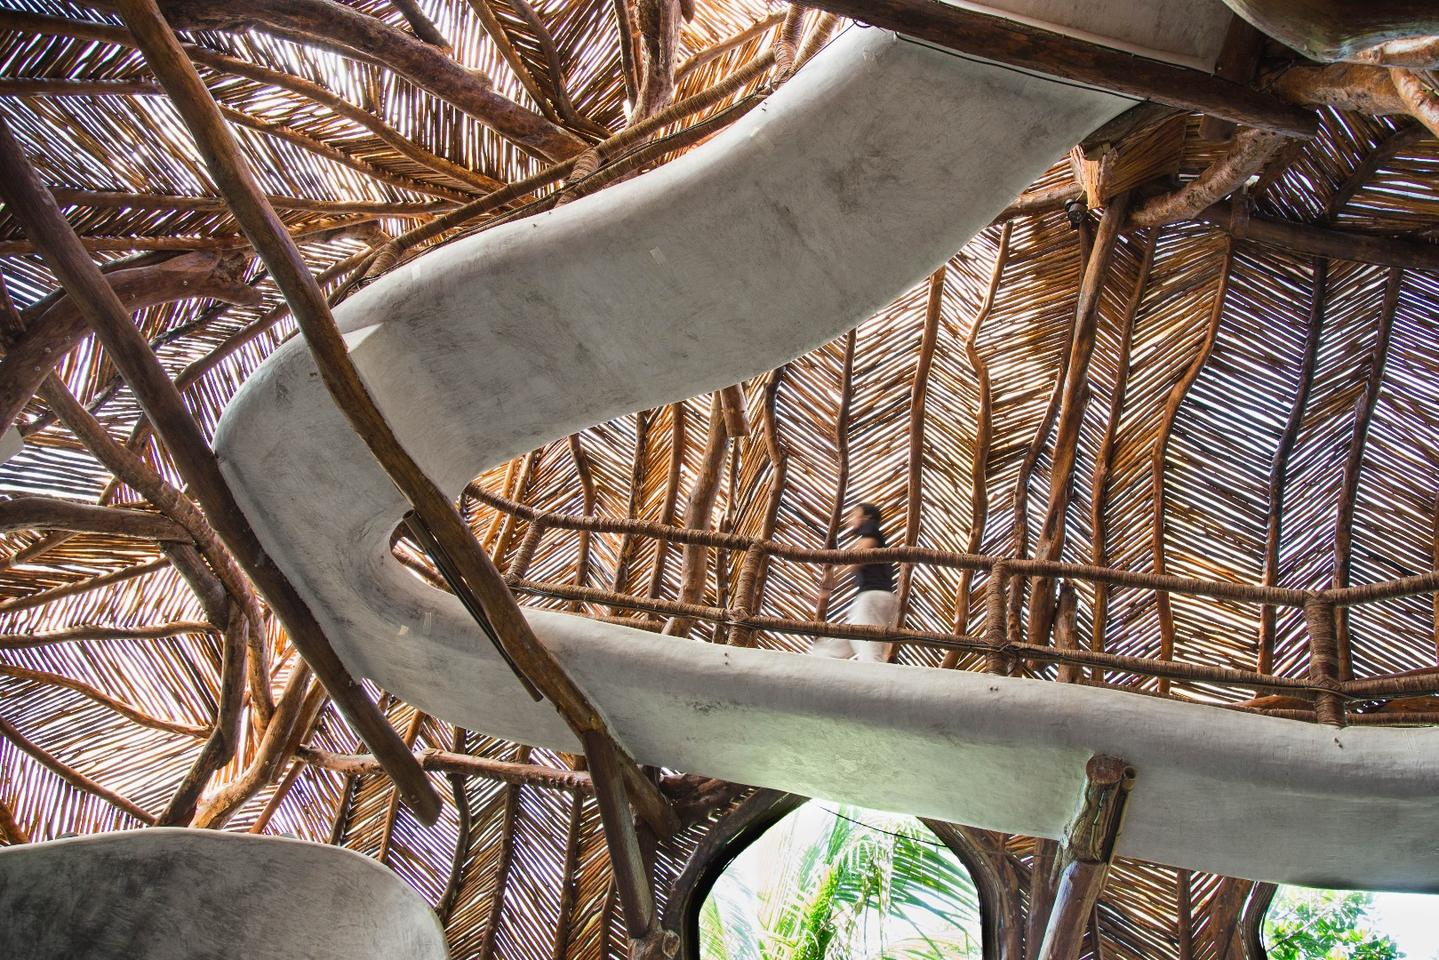 Art lovers passing through the popular vacation town Tulum on Mexico's Yucatan Peninsula have an incredible new space in which they can indulge the senses, the IK Lab at the Azulik Resort